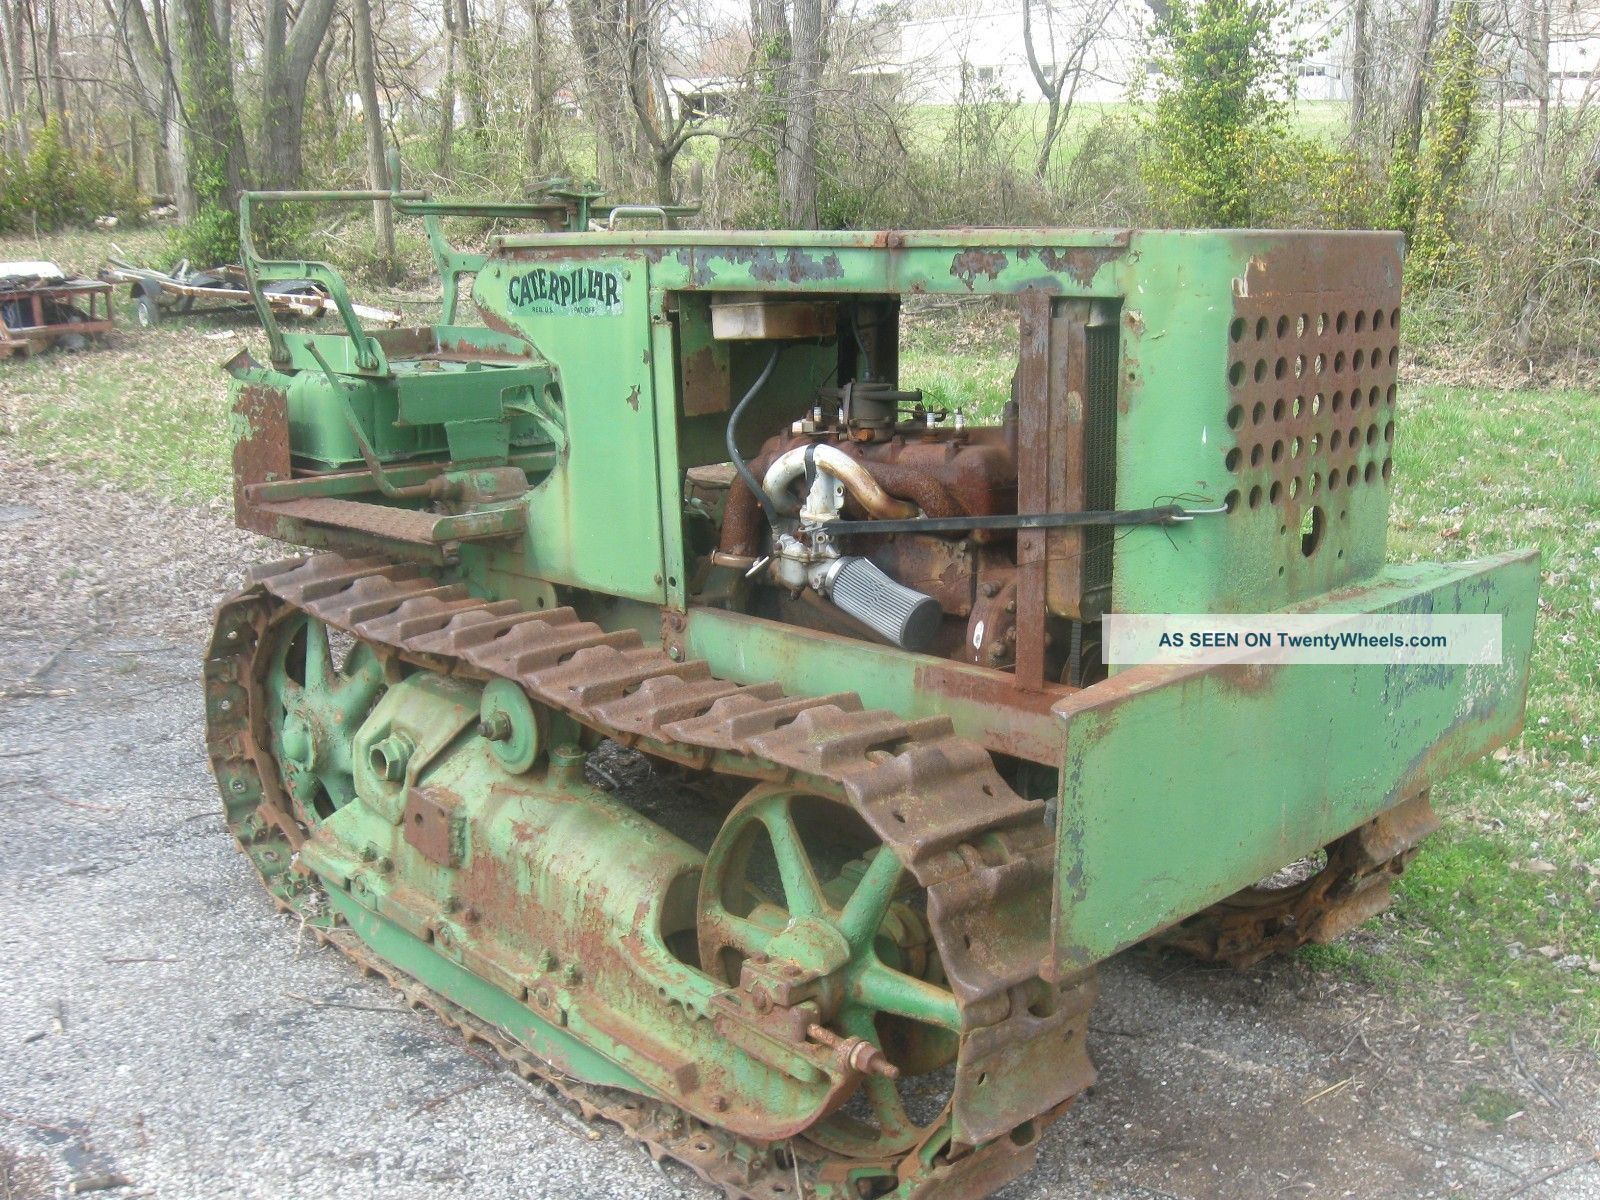 1928 Caterpillar 2 - Ton Tractor Model A 4 Cylinder Flat Head Fully Functional T35 Other photo